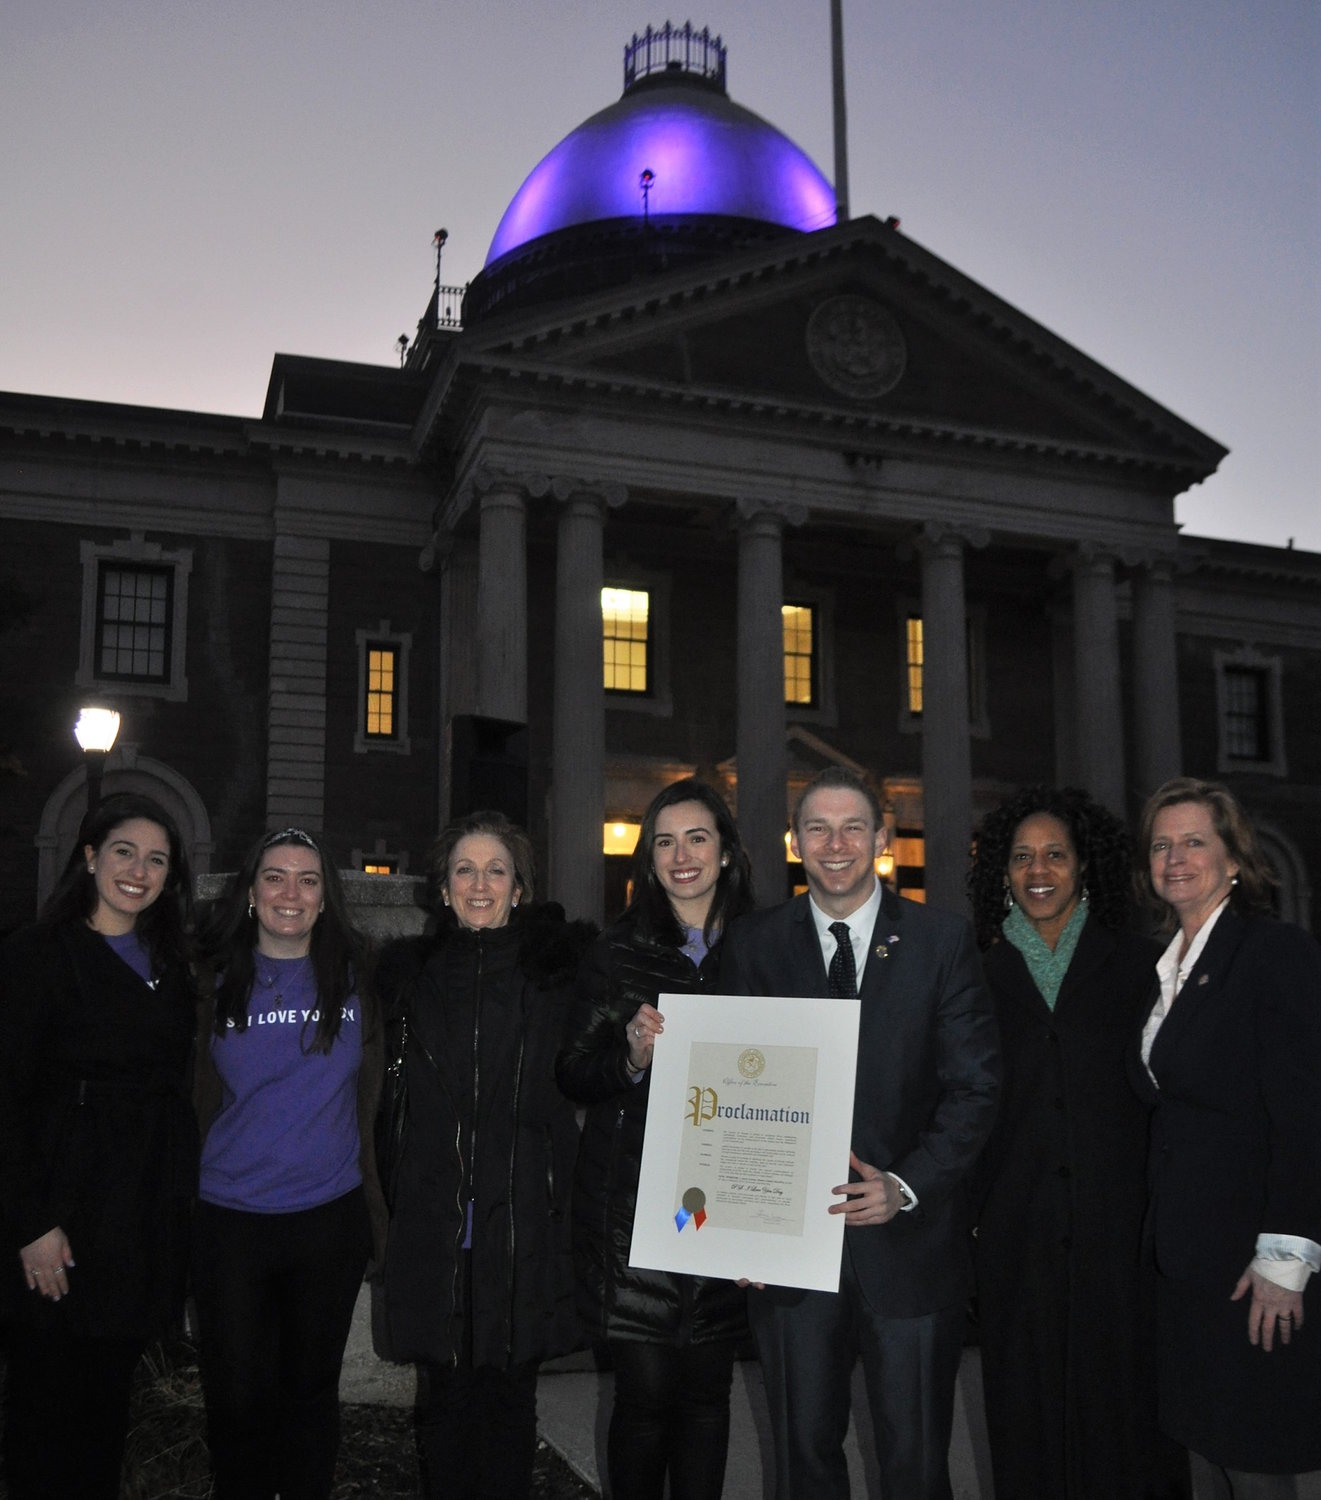 Legislator Josh Lafazan and other Nassau County officials met with P.S. I Love You Day founders Brooke DiPalma, left, and Jaimie DiPalma, center, to light the dome of the Theodore Roosevelt Executive and Legislative Building in Mineola to increase suicide awareness. The dome shone purple, the color the foundation has adopted.